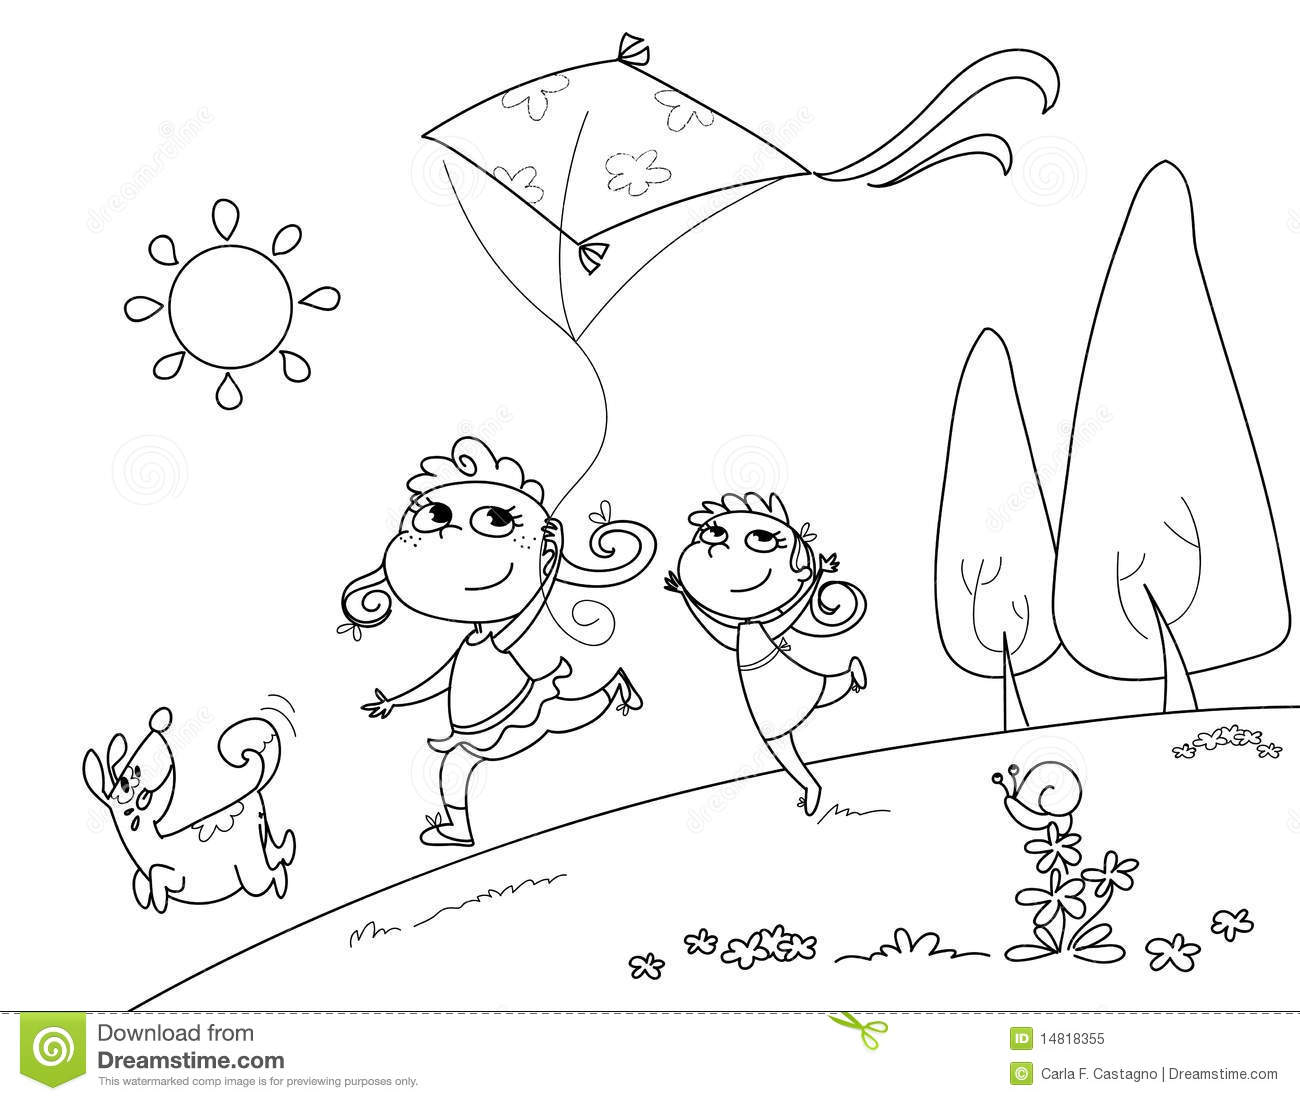 coloring kite black and white playing with the kite royalty free stock photo image white and coloring kite black